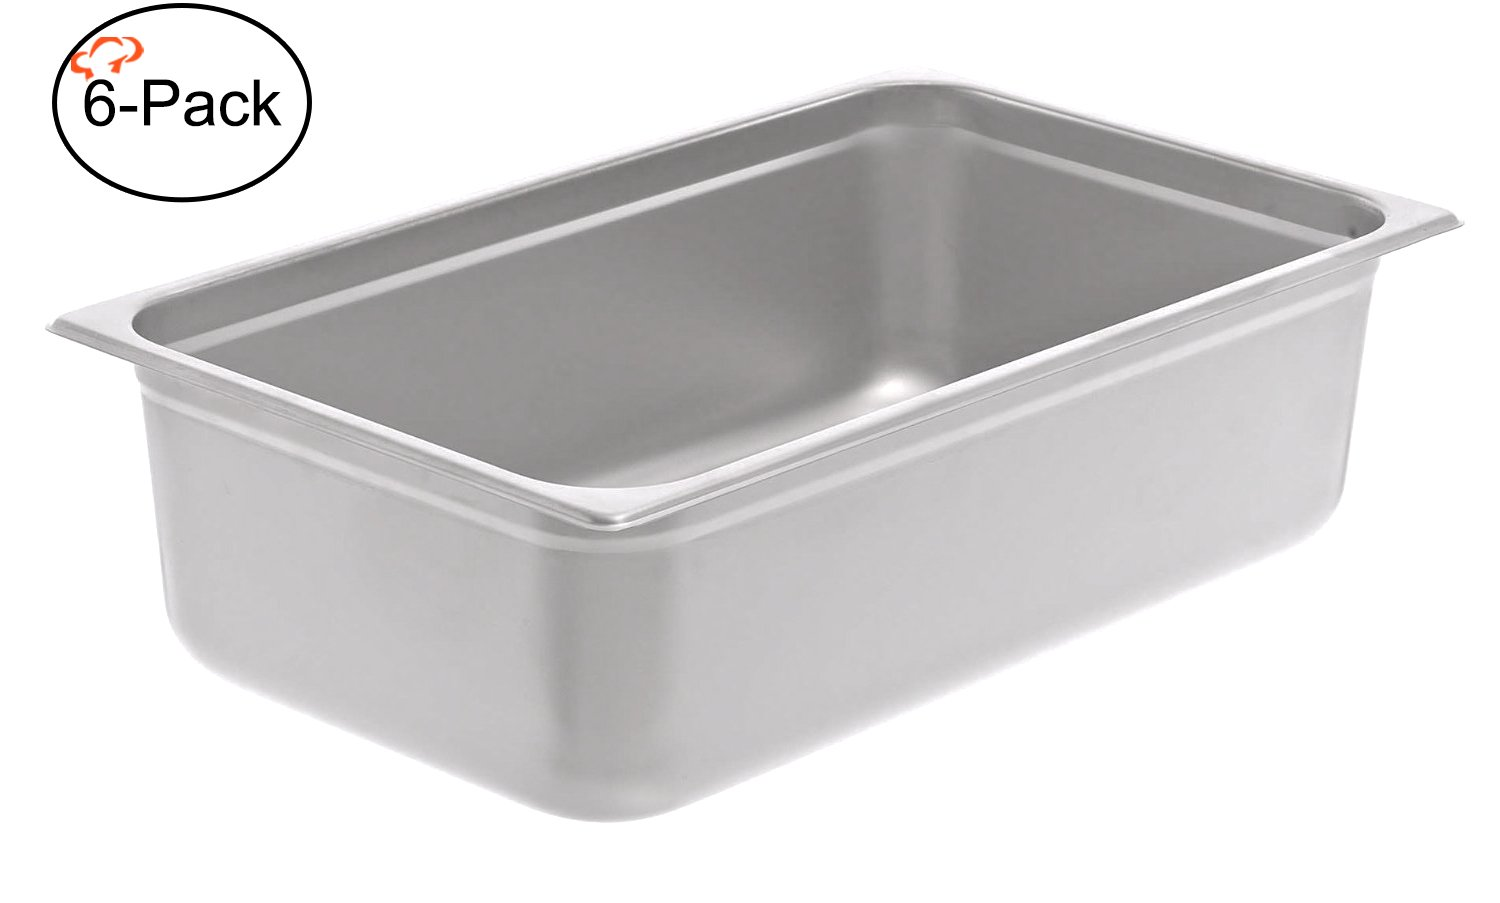 Tiger Chef 6-Pack 6-inch Full-Size Stainless Steel Anti-Jam Steam Table Pan, Hotel Pan